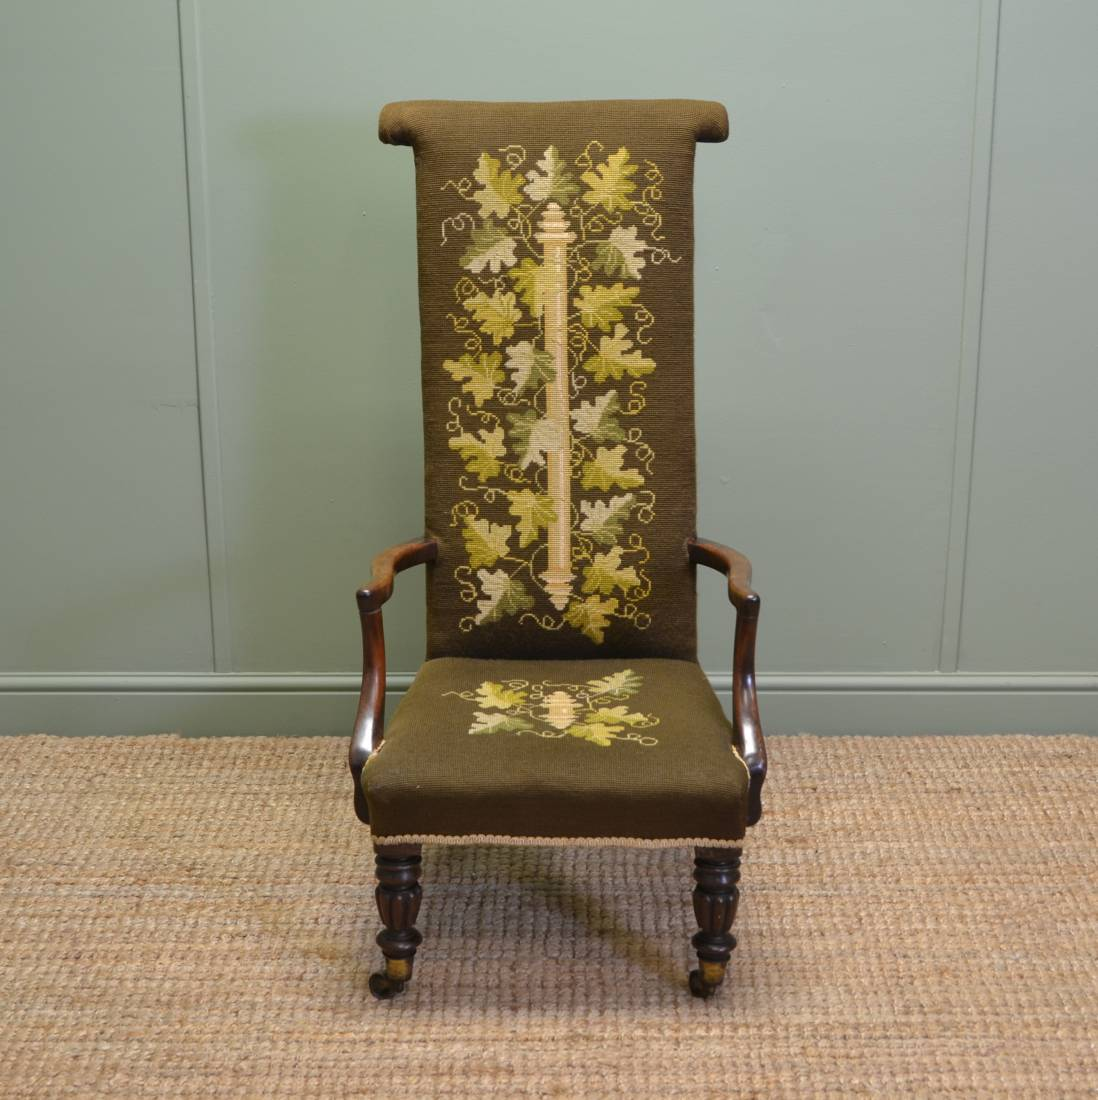 Unusual William IV Mahogany Antique Prayer Chair / Side Chair - Unusual William IV Mahogany Antique Prayer Chair / Side Chair